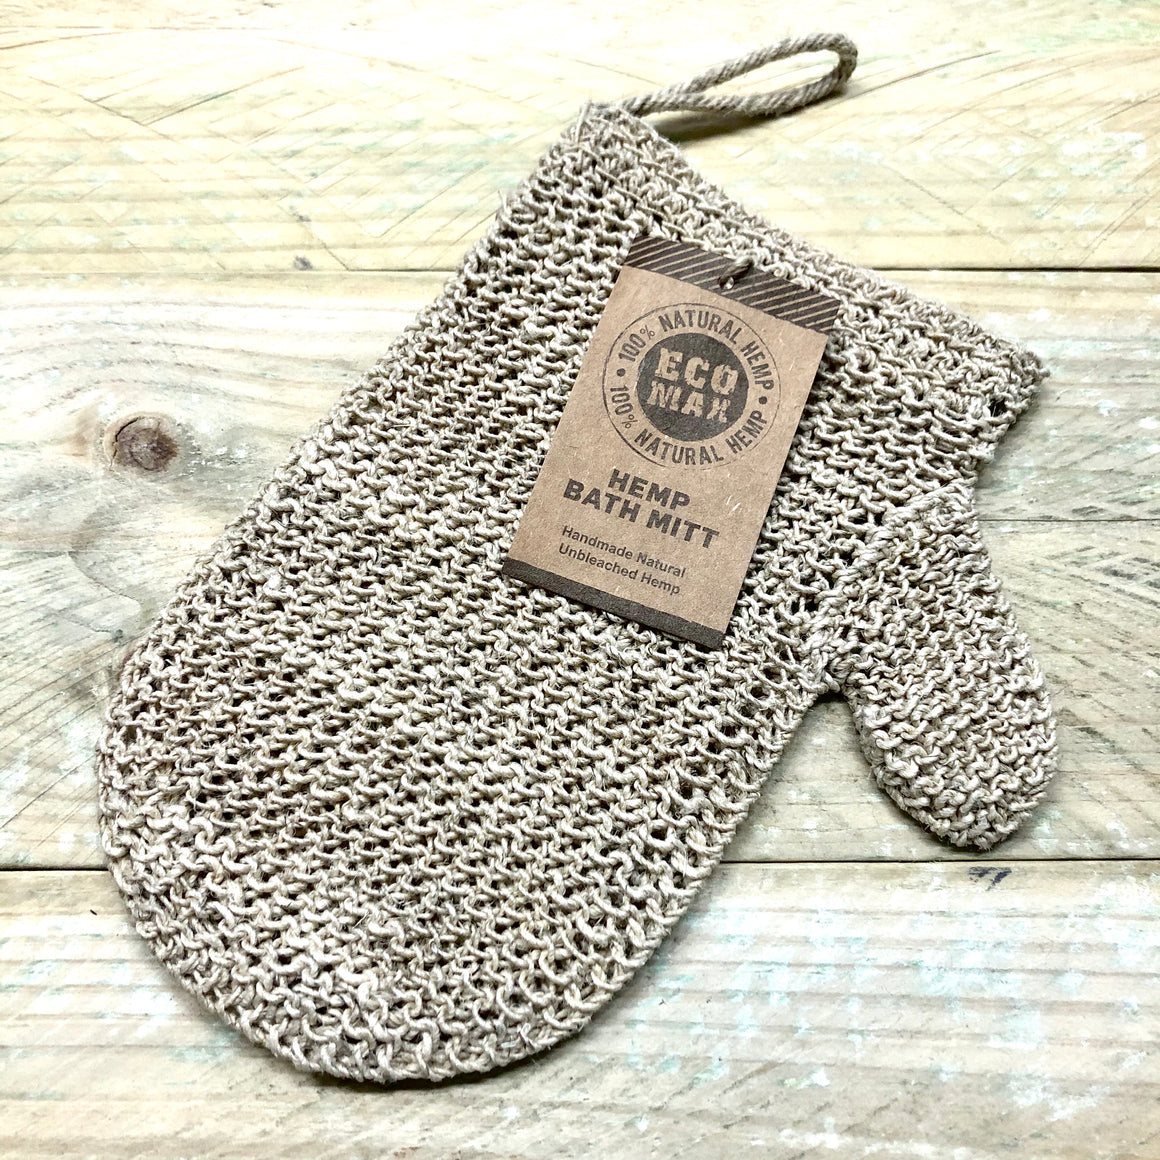 BODY | Hemp Exfoliating Mitt